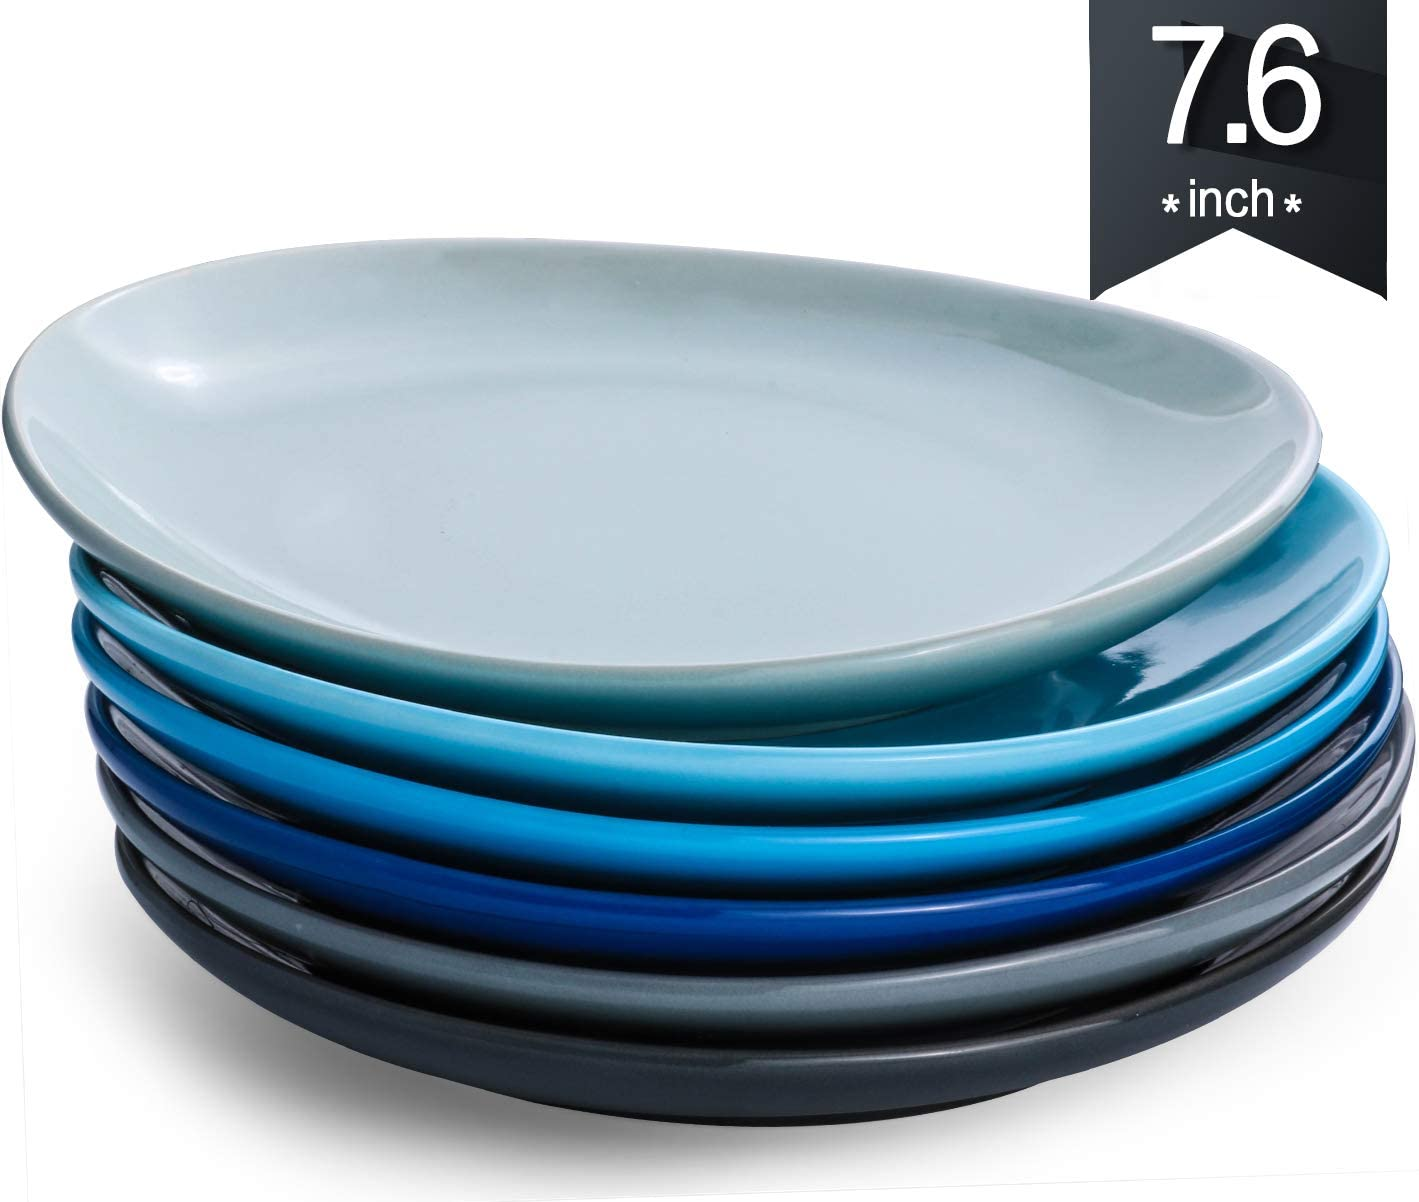 KOMUEE Porcelain Dinner Plates - 5.5 Inch - Set of 5, Cool Assorted Colors